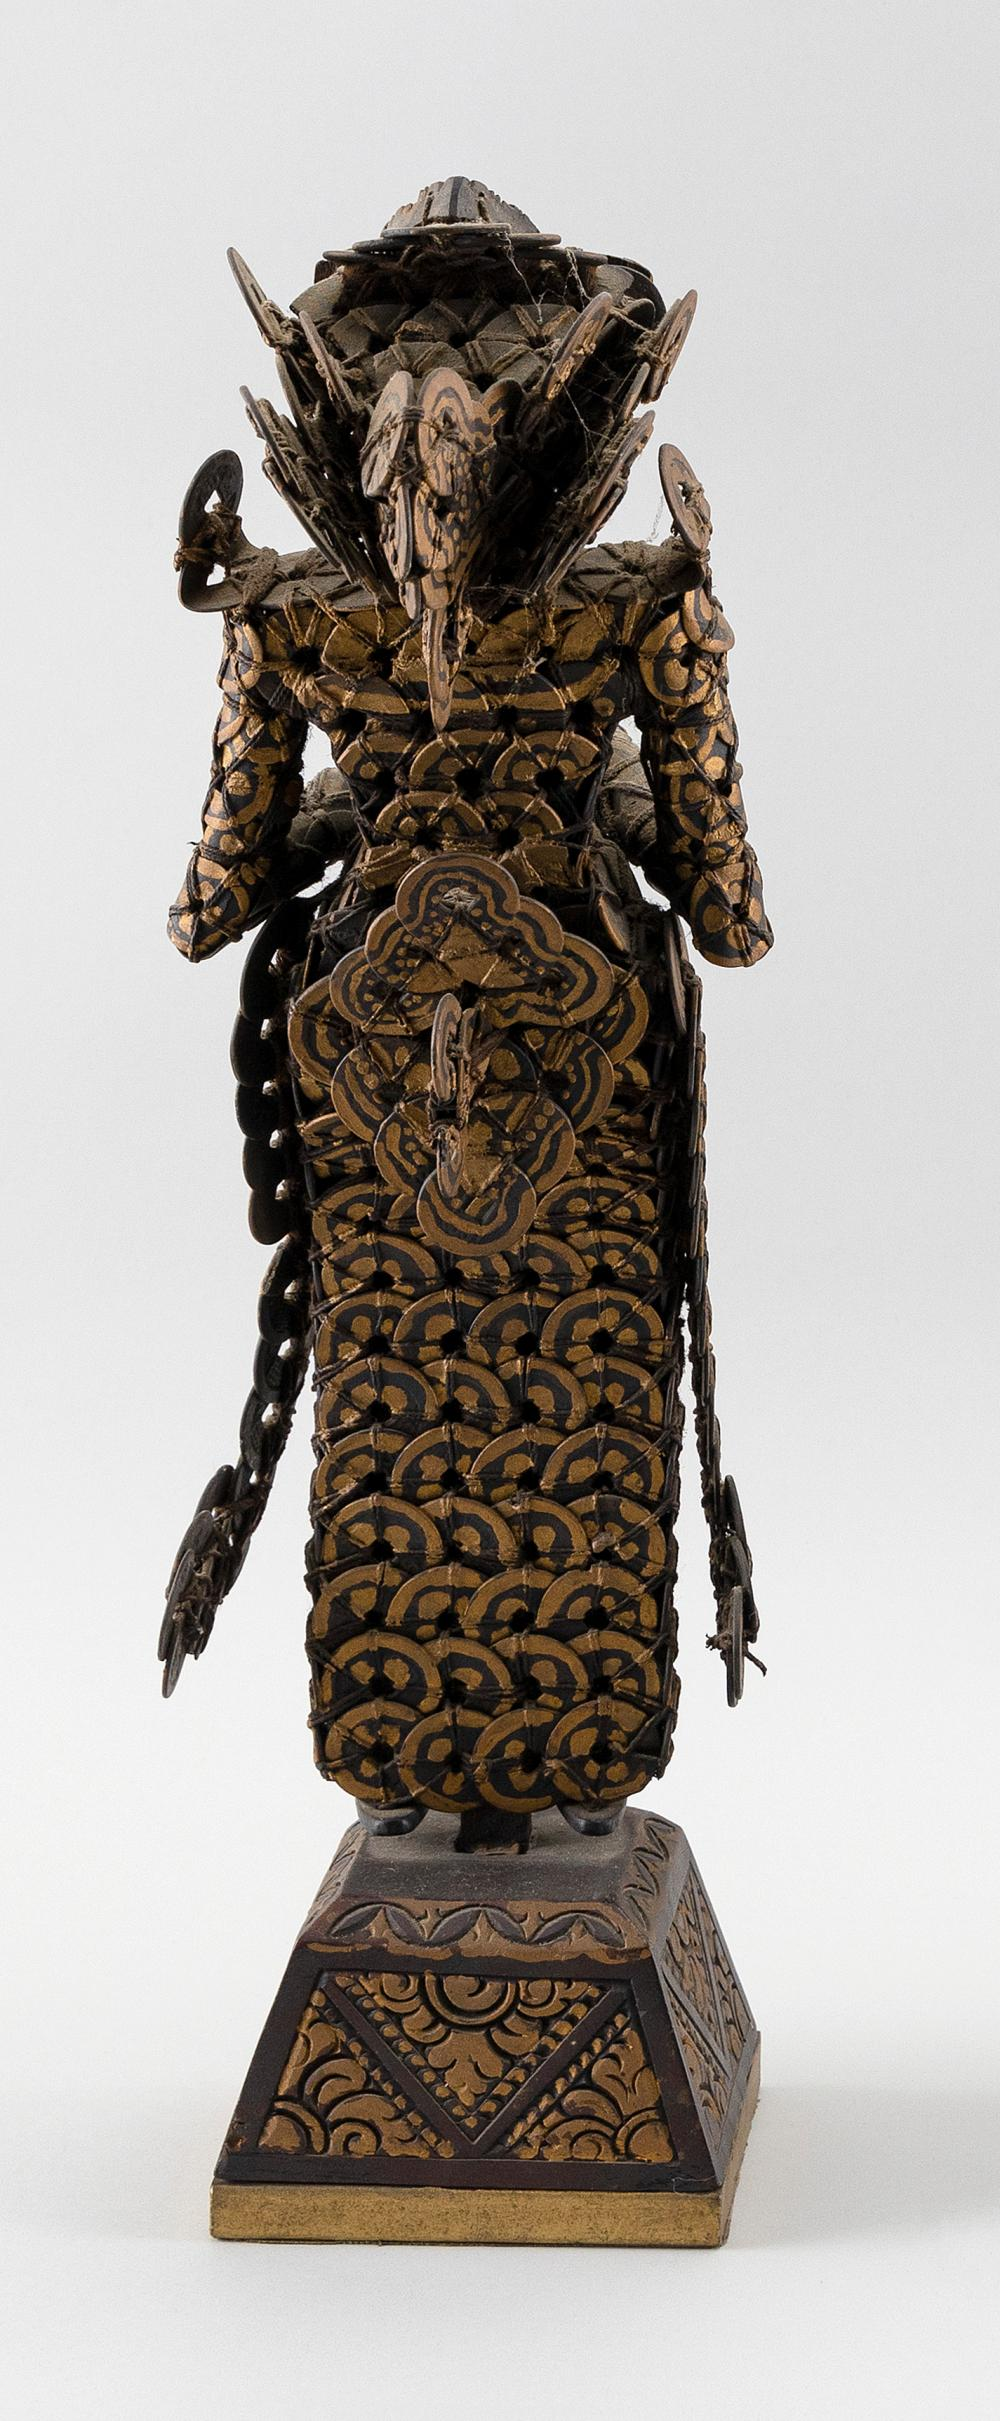 BALINESE SANDALWOOD AND KEPENG CHINESE COIN FIGURE OF A LEGONG DANCER Standing on a carved and painted wood base. Height 18